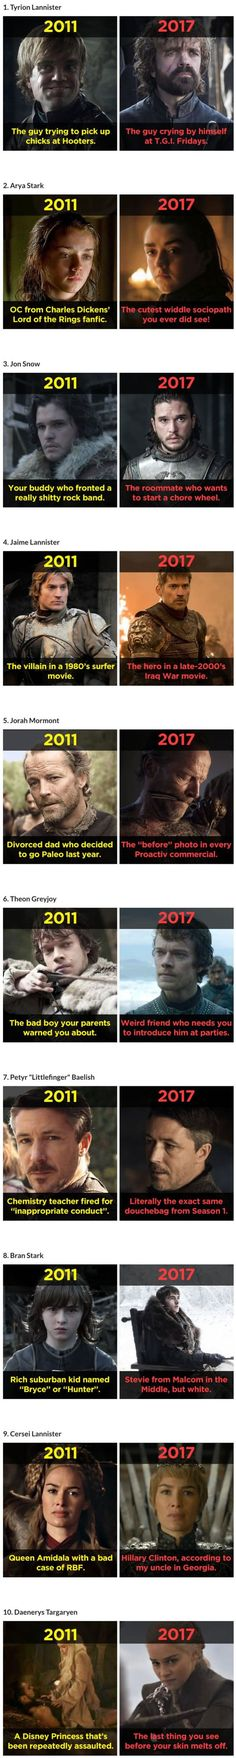 Game of Thrones Cast in 2011 to 2017